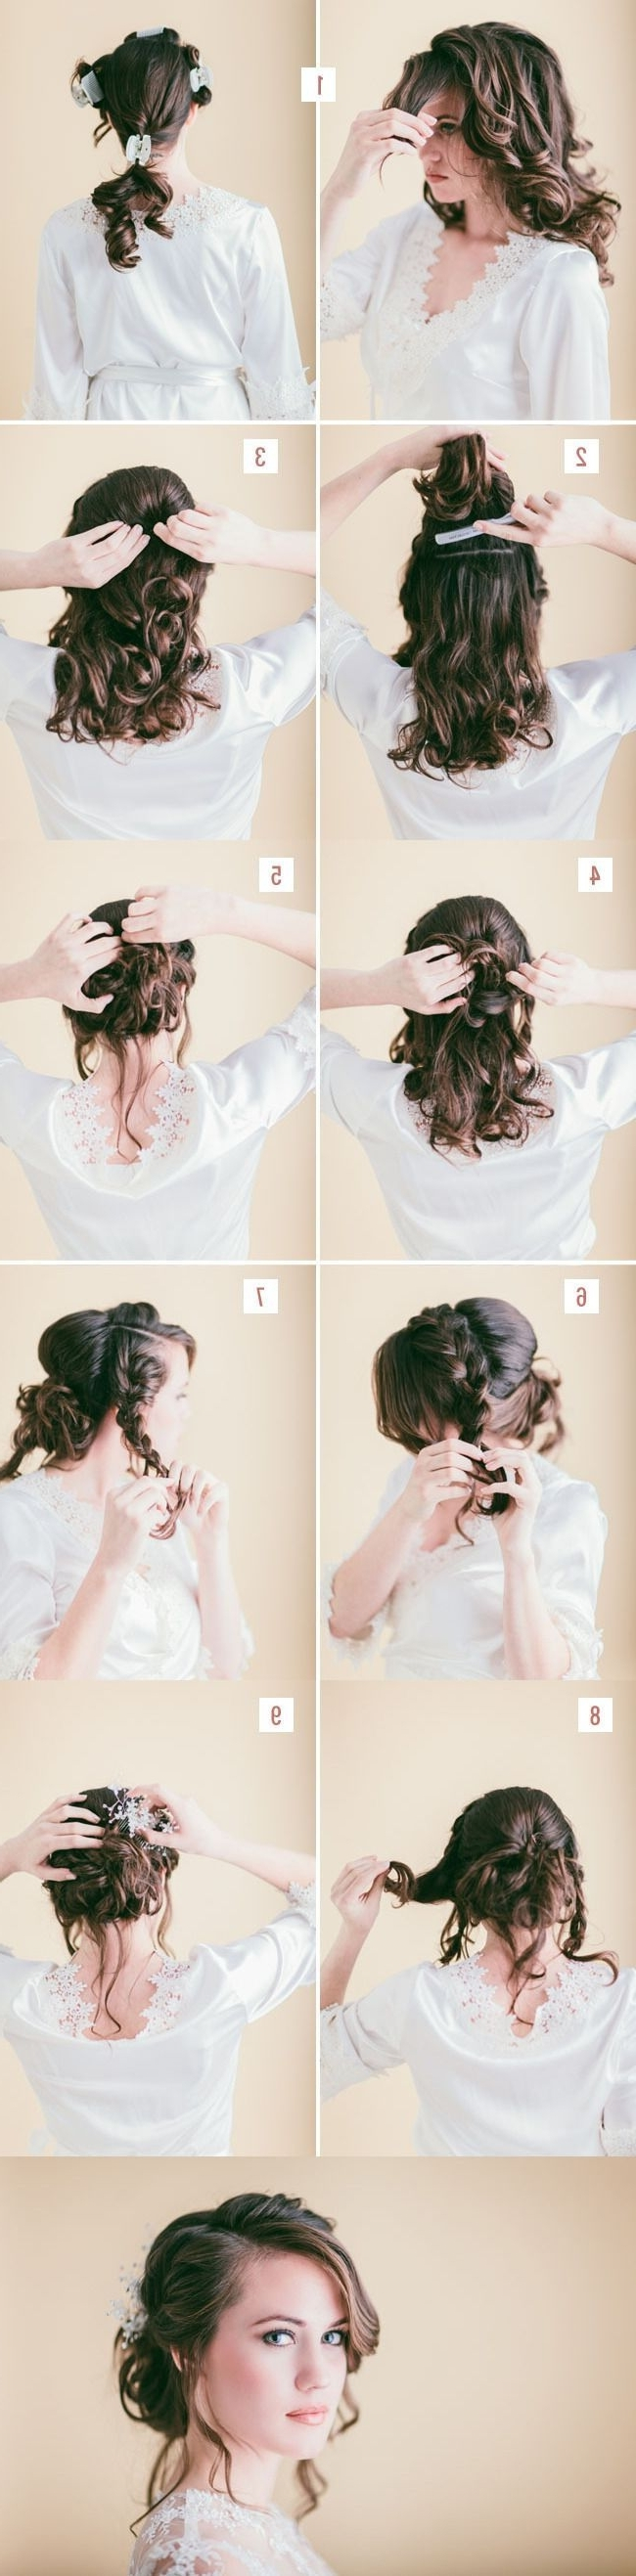 4925 Best Chic Braided Hair Images On Pinterest | Cute Hairstyles With Easy Braided Updo Hairstyles For Long Hair (View 4 of 15)